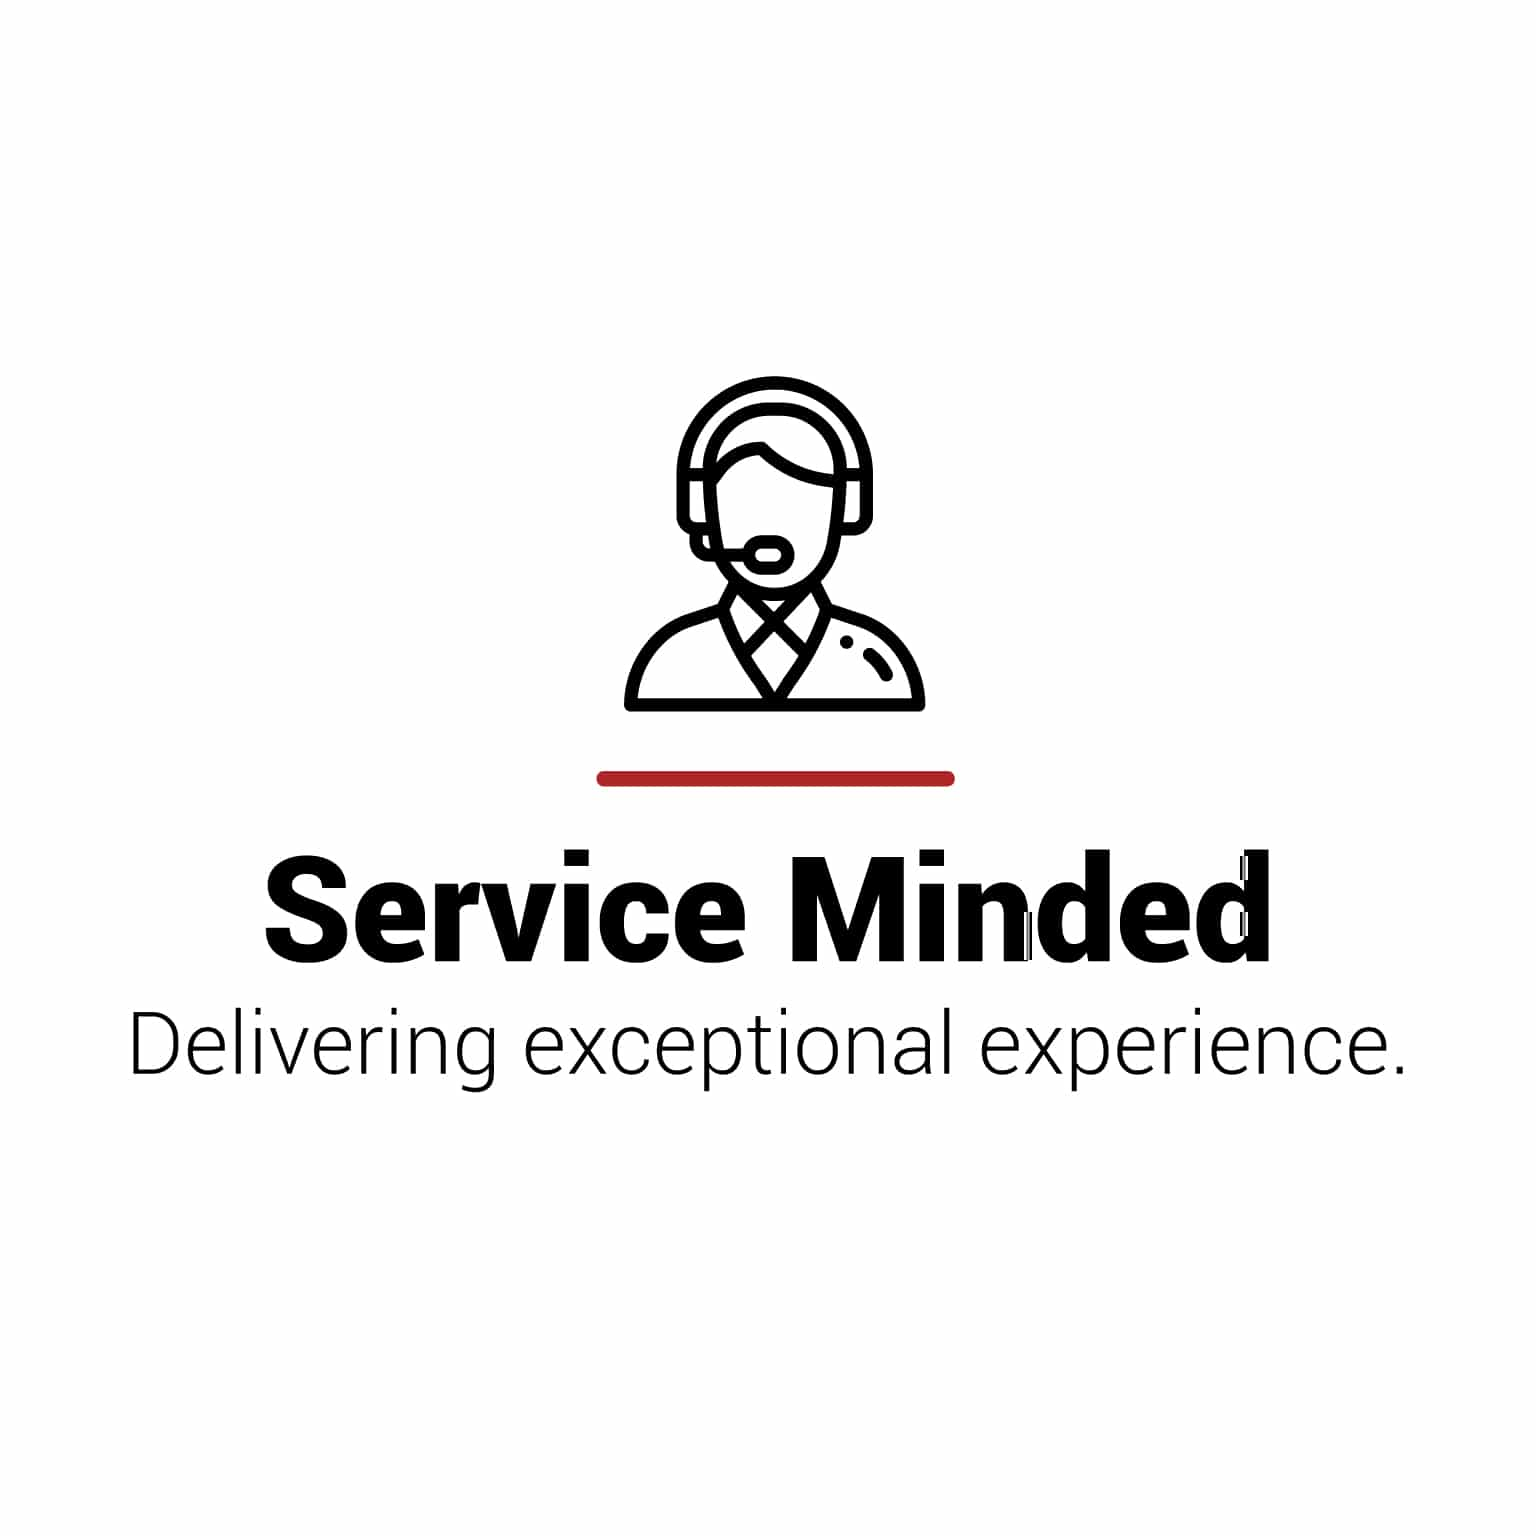 Service Minded Delivering Exceptional Experience at FH Packaging by www.fhpkg.com